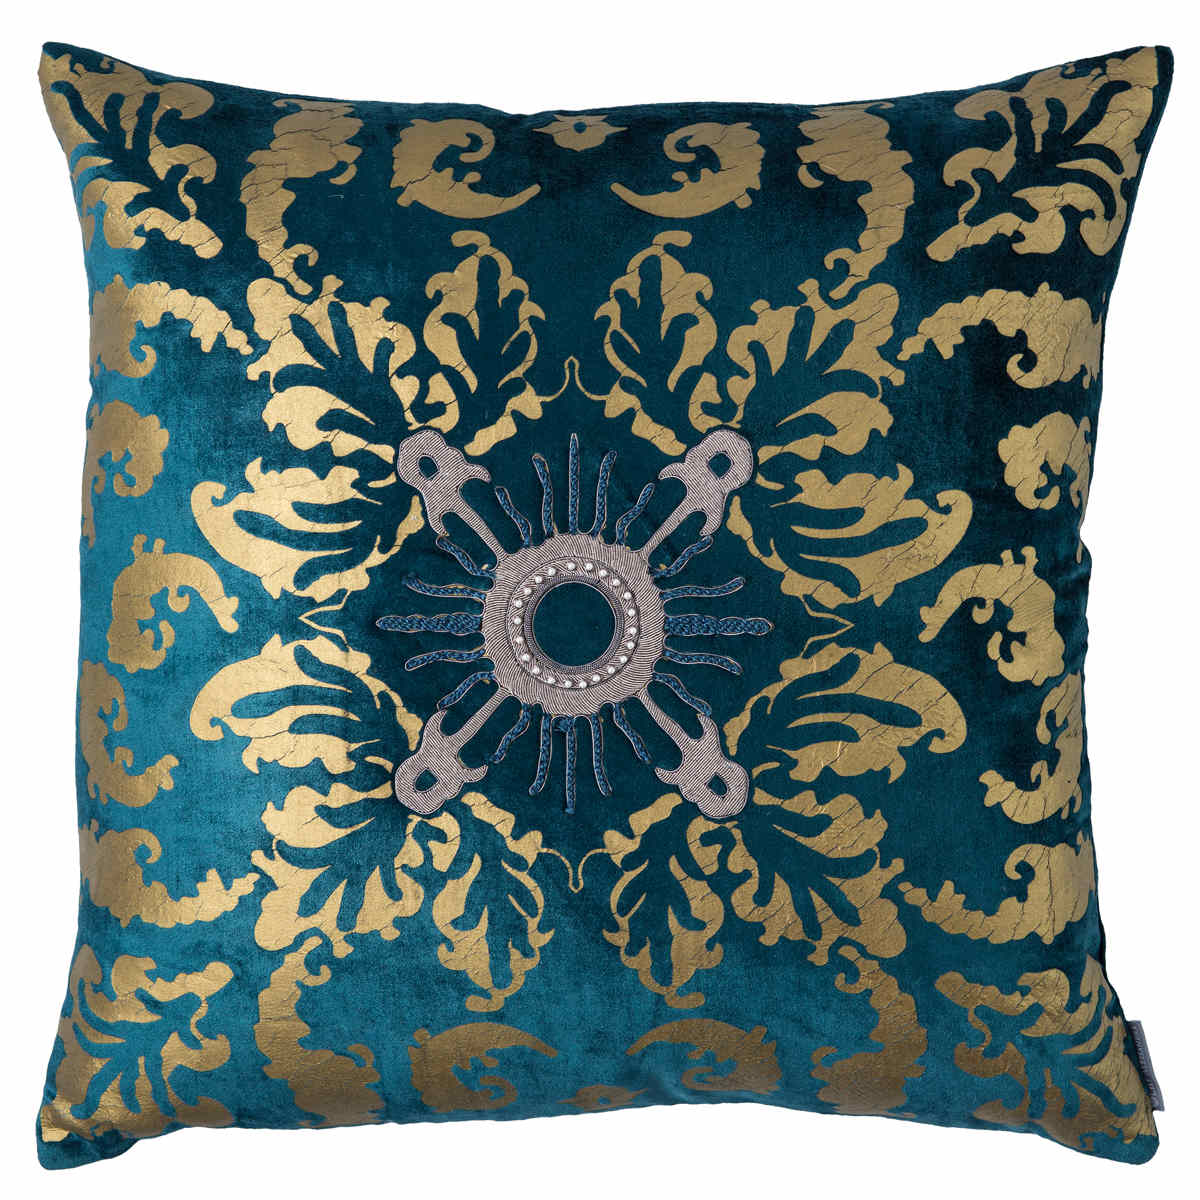 embellished snake alt apple muse d gold modern image decor pillows throw textured cor pillow and jonathan